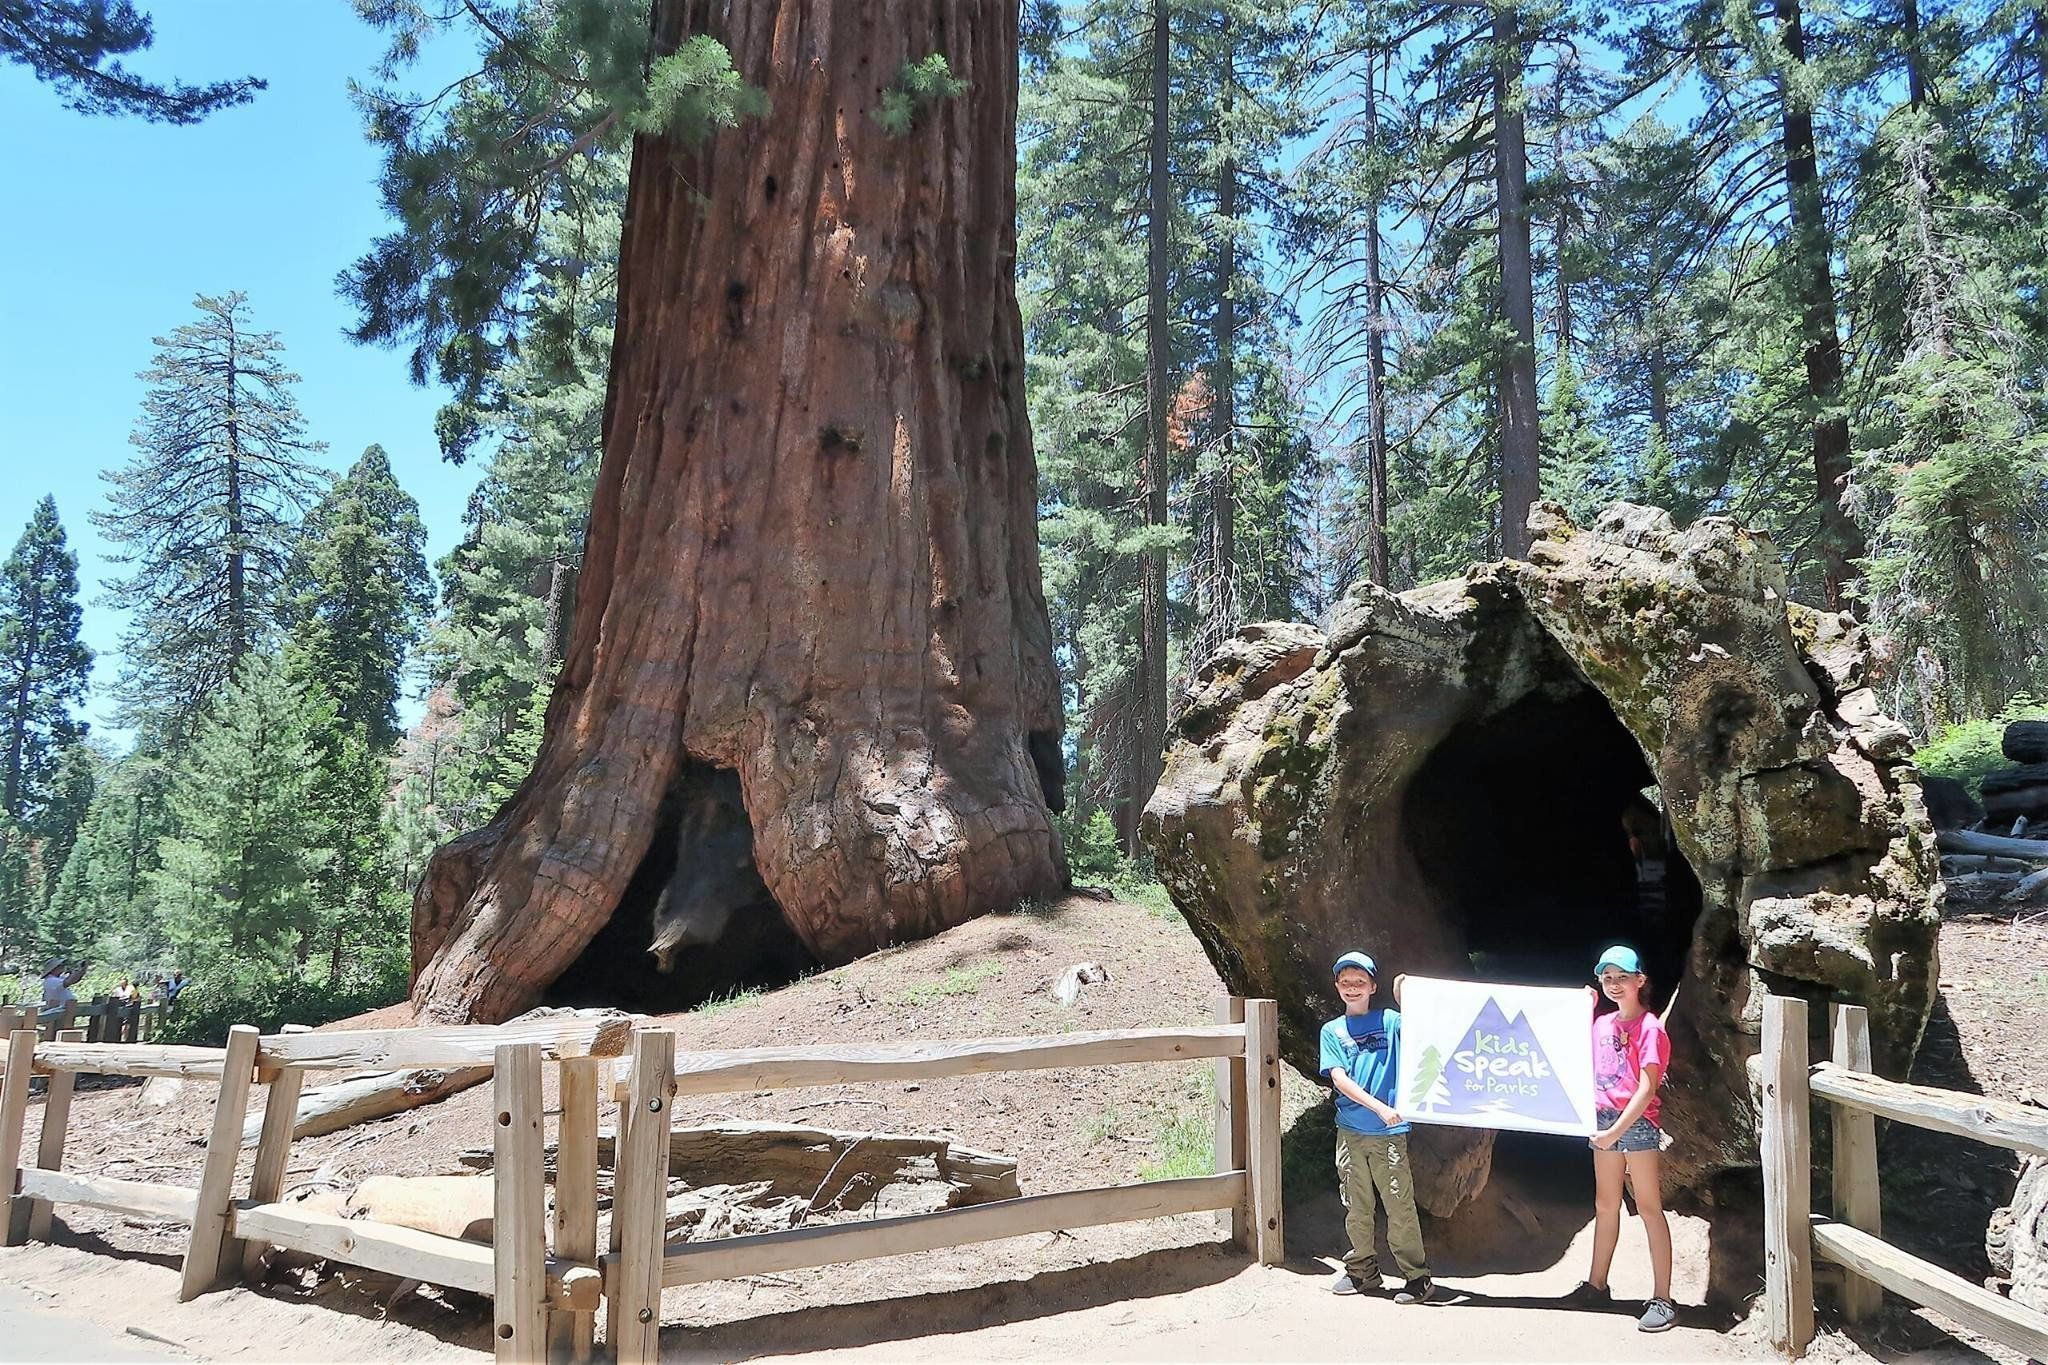 Robbie Bond and his friendLily May Stuart ona recent trip to California's Giant Sequoia National Monument, one of